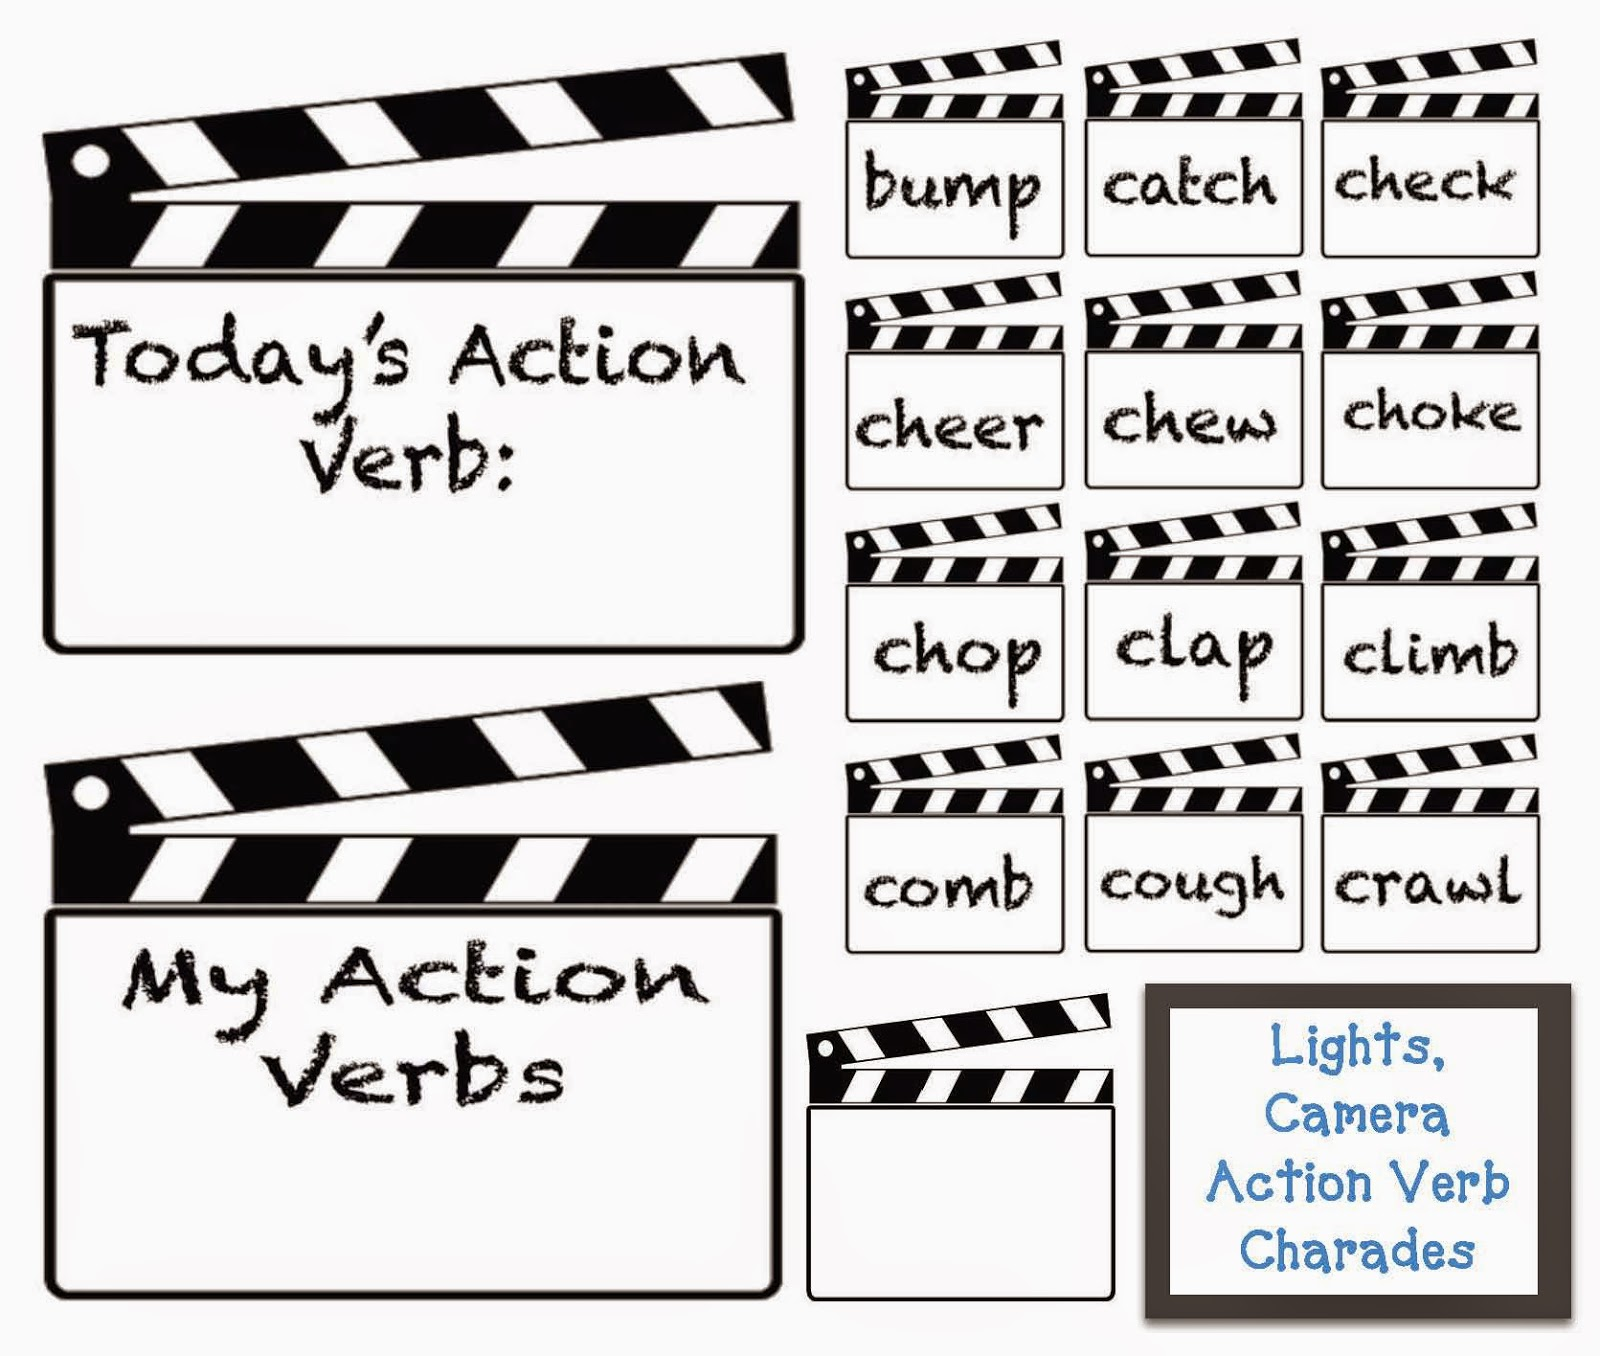 Charades Action Word List